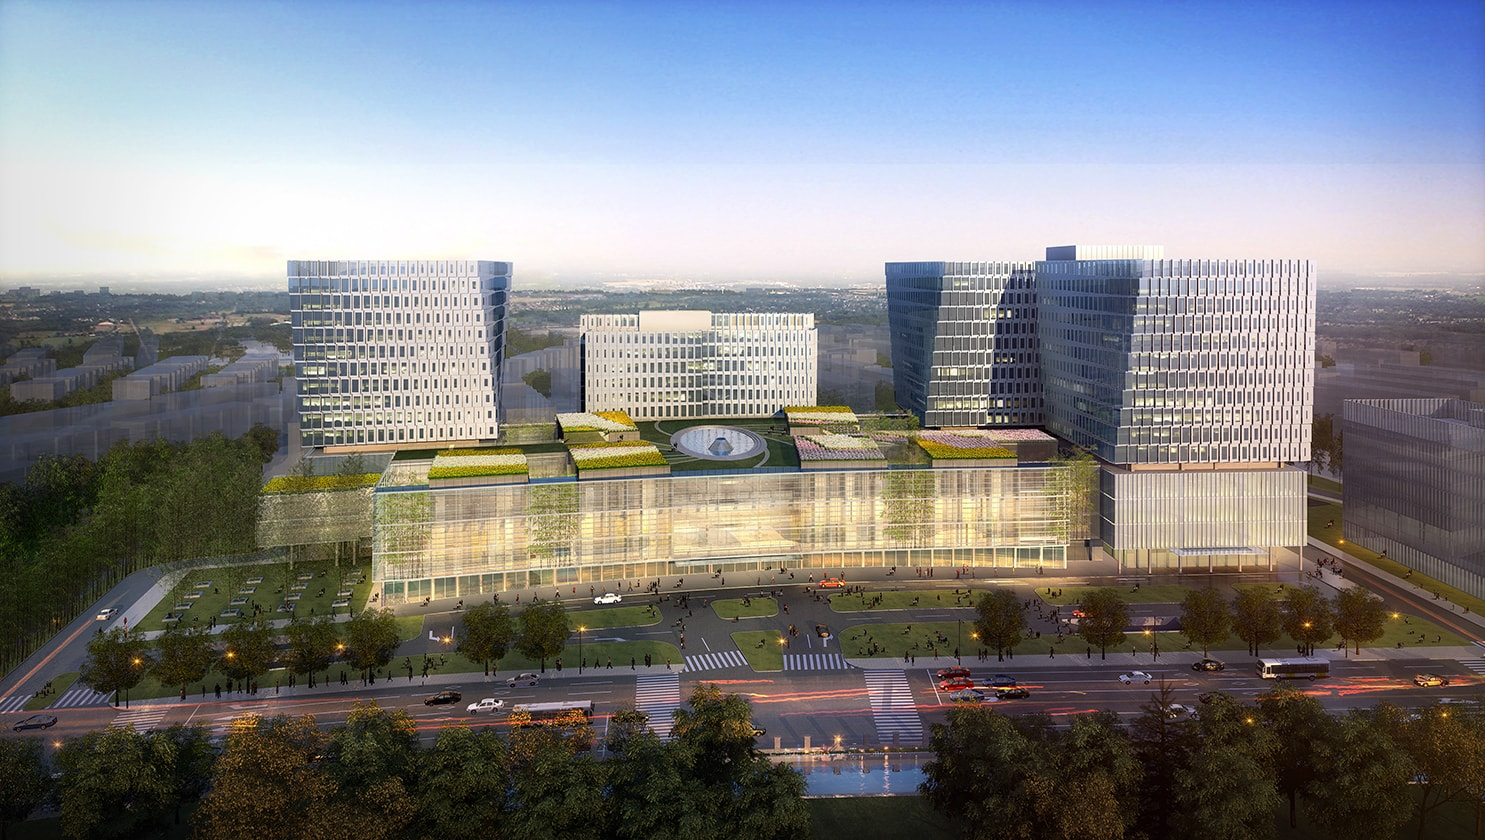 Xuhui Southern Medical Center by Quezada Architecture (Fred Quezada, Cecilia Quezada, Ed Tingley)